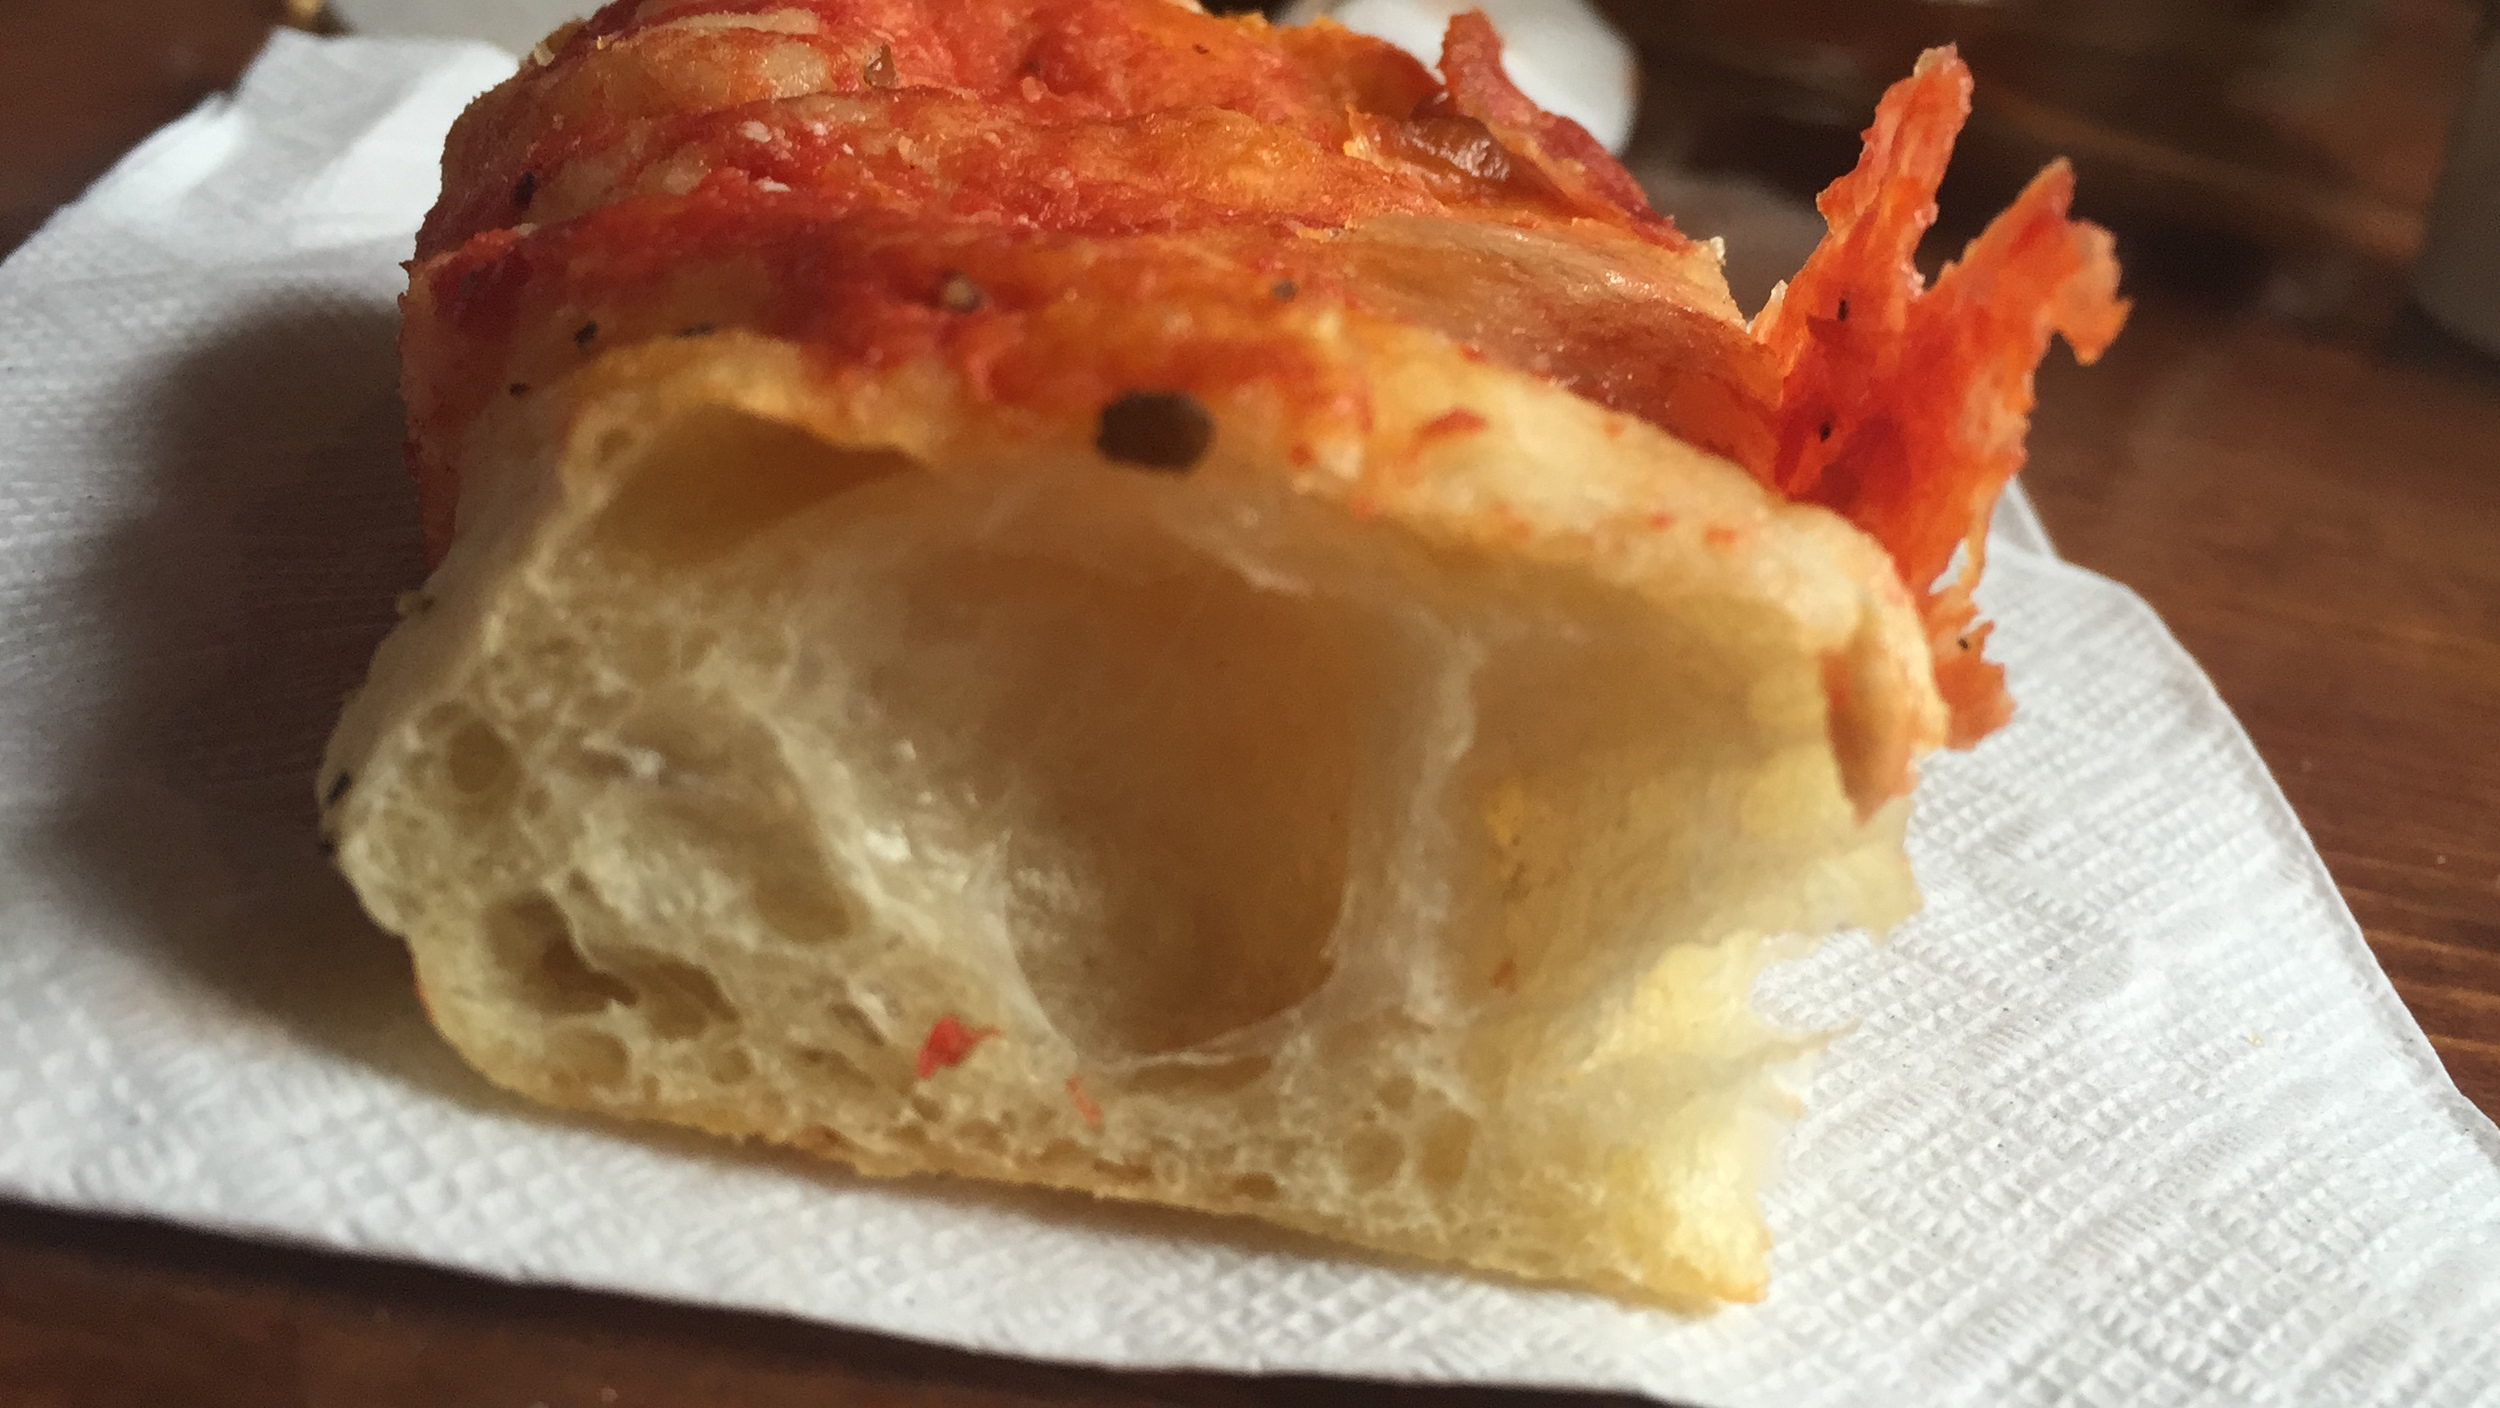 A slice of Tony  Giaramita's Pizza al Taglio from when he was bringing pizza to Espresso a Mano.